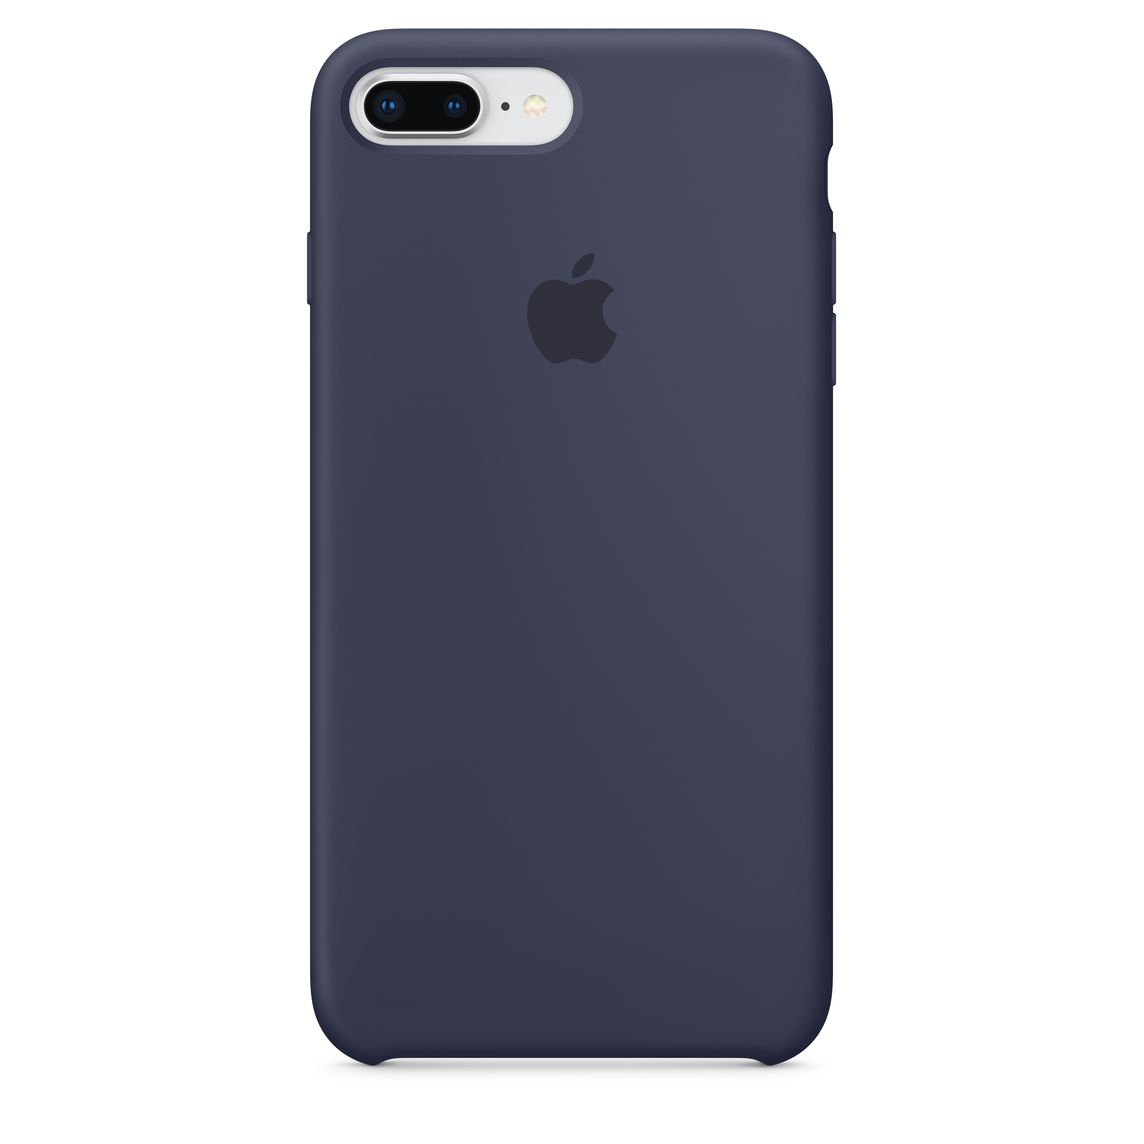 online store 02e97 ea69d iPhone 8 Plus / 7 Plus Silicone Case - Midnight Blue